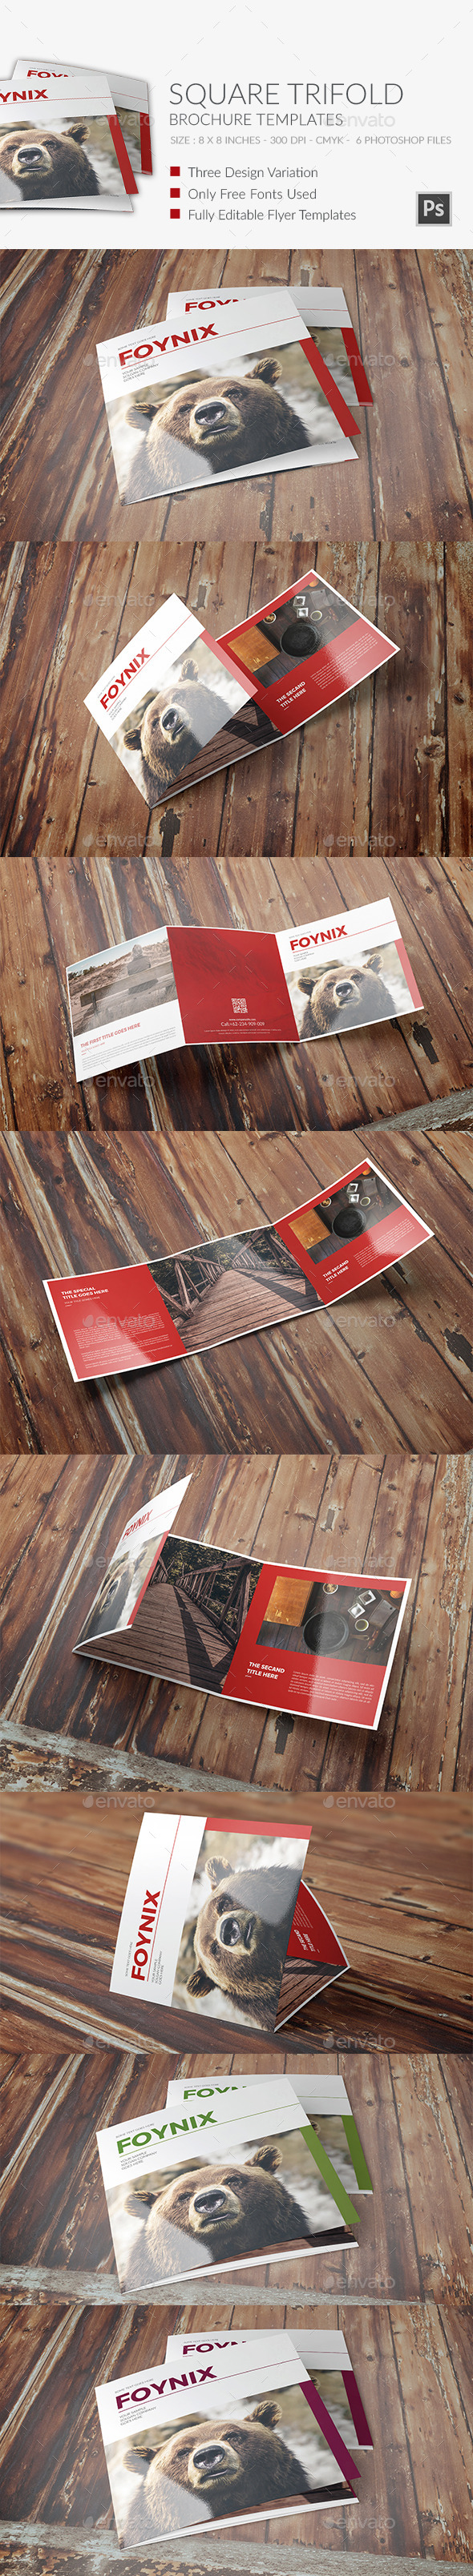 Square Trifold Brochure 6 - Brochures Print Templates